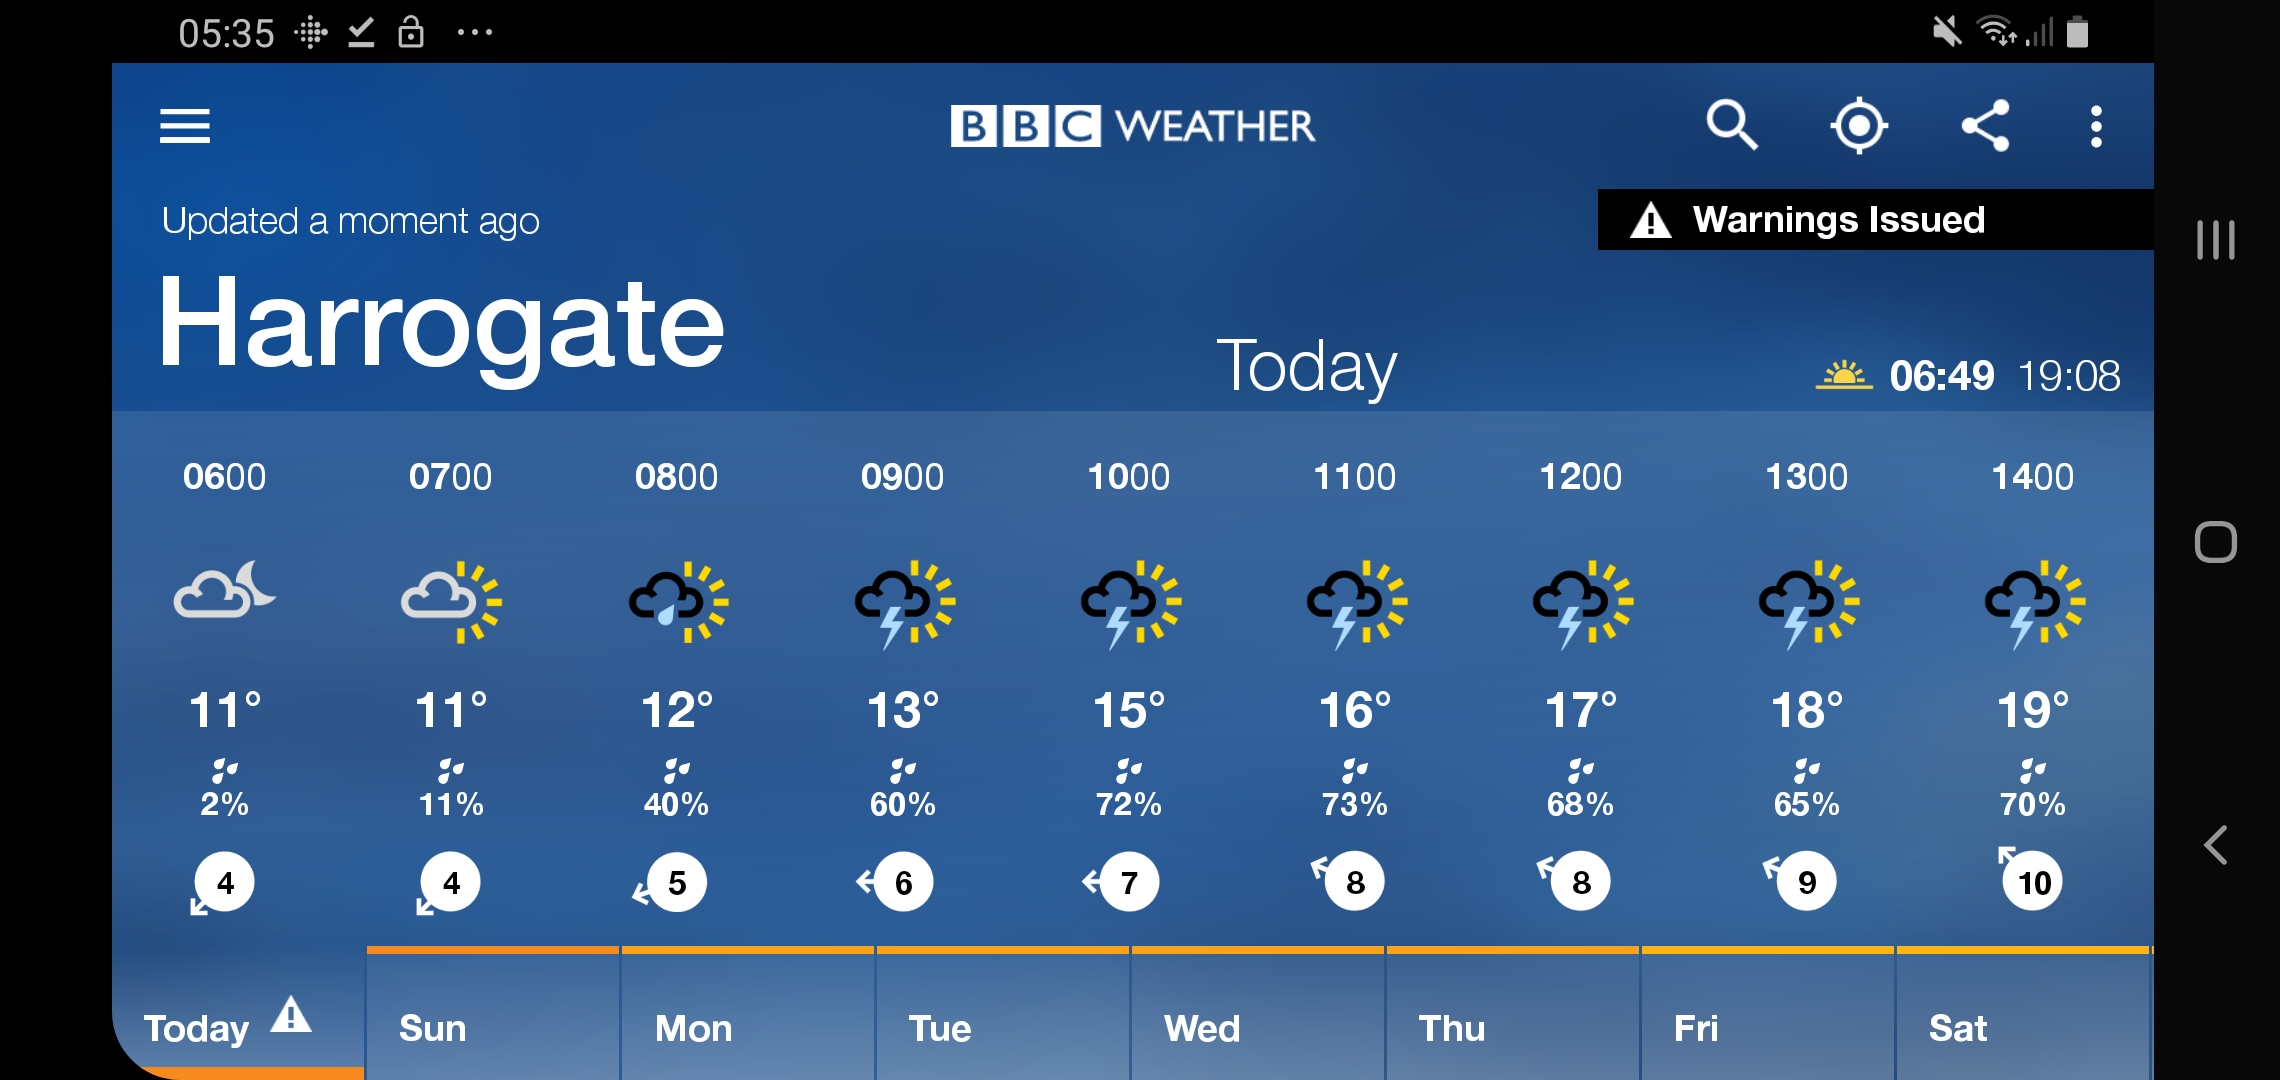 pcmdaily.com/images/screenshot_20190922-053524_bbc_weather.jpg